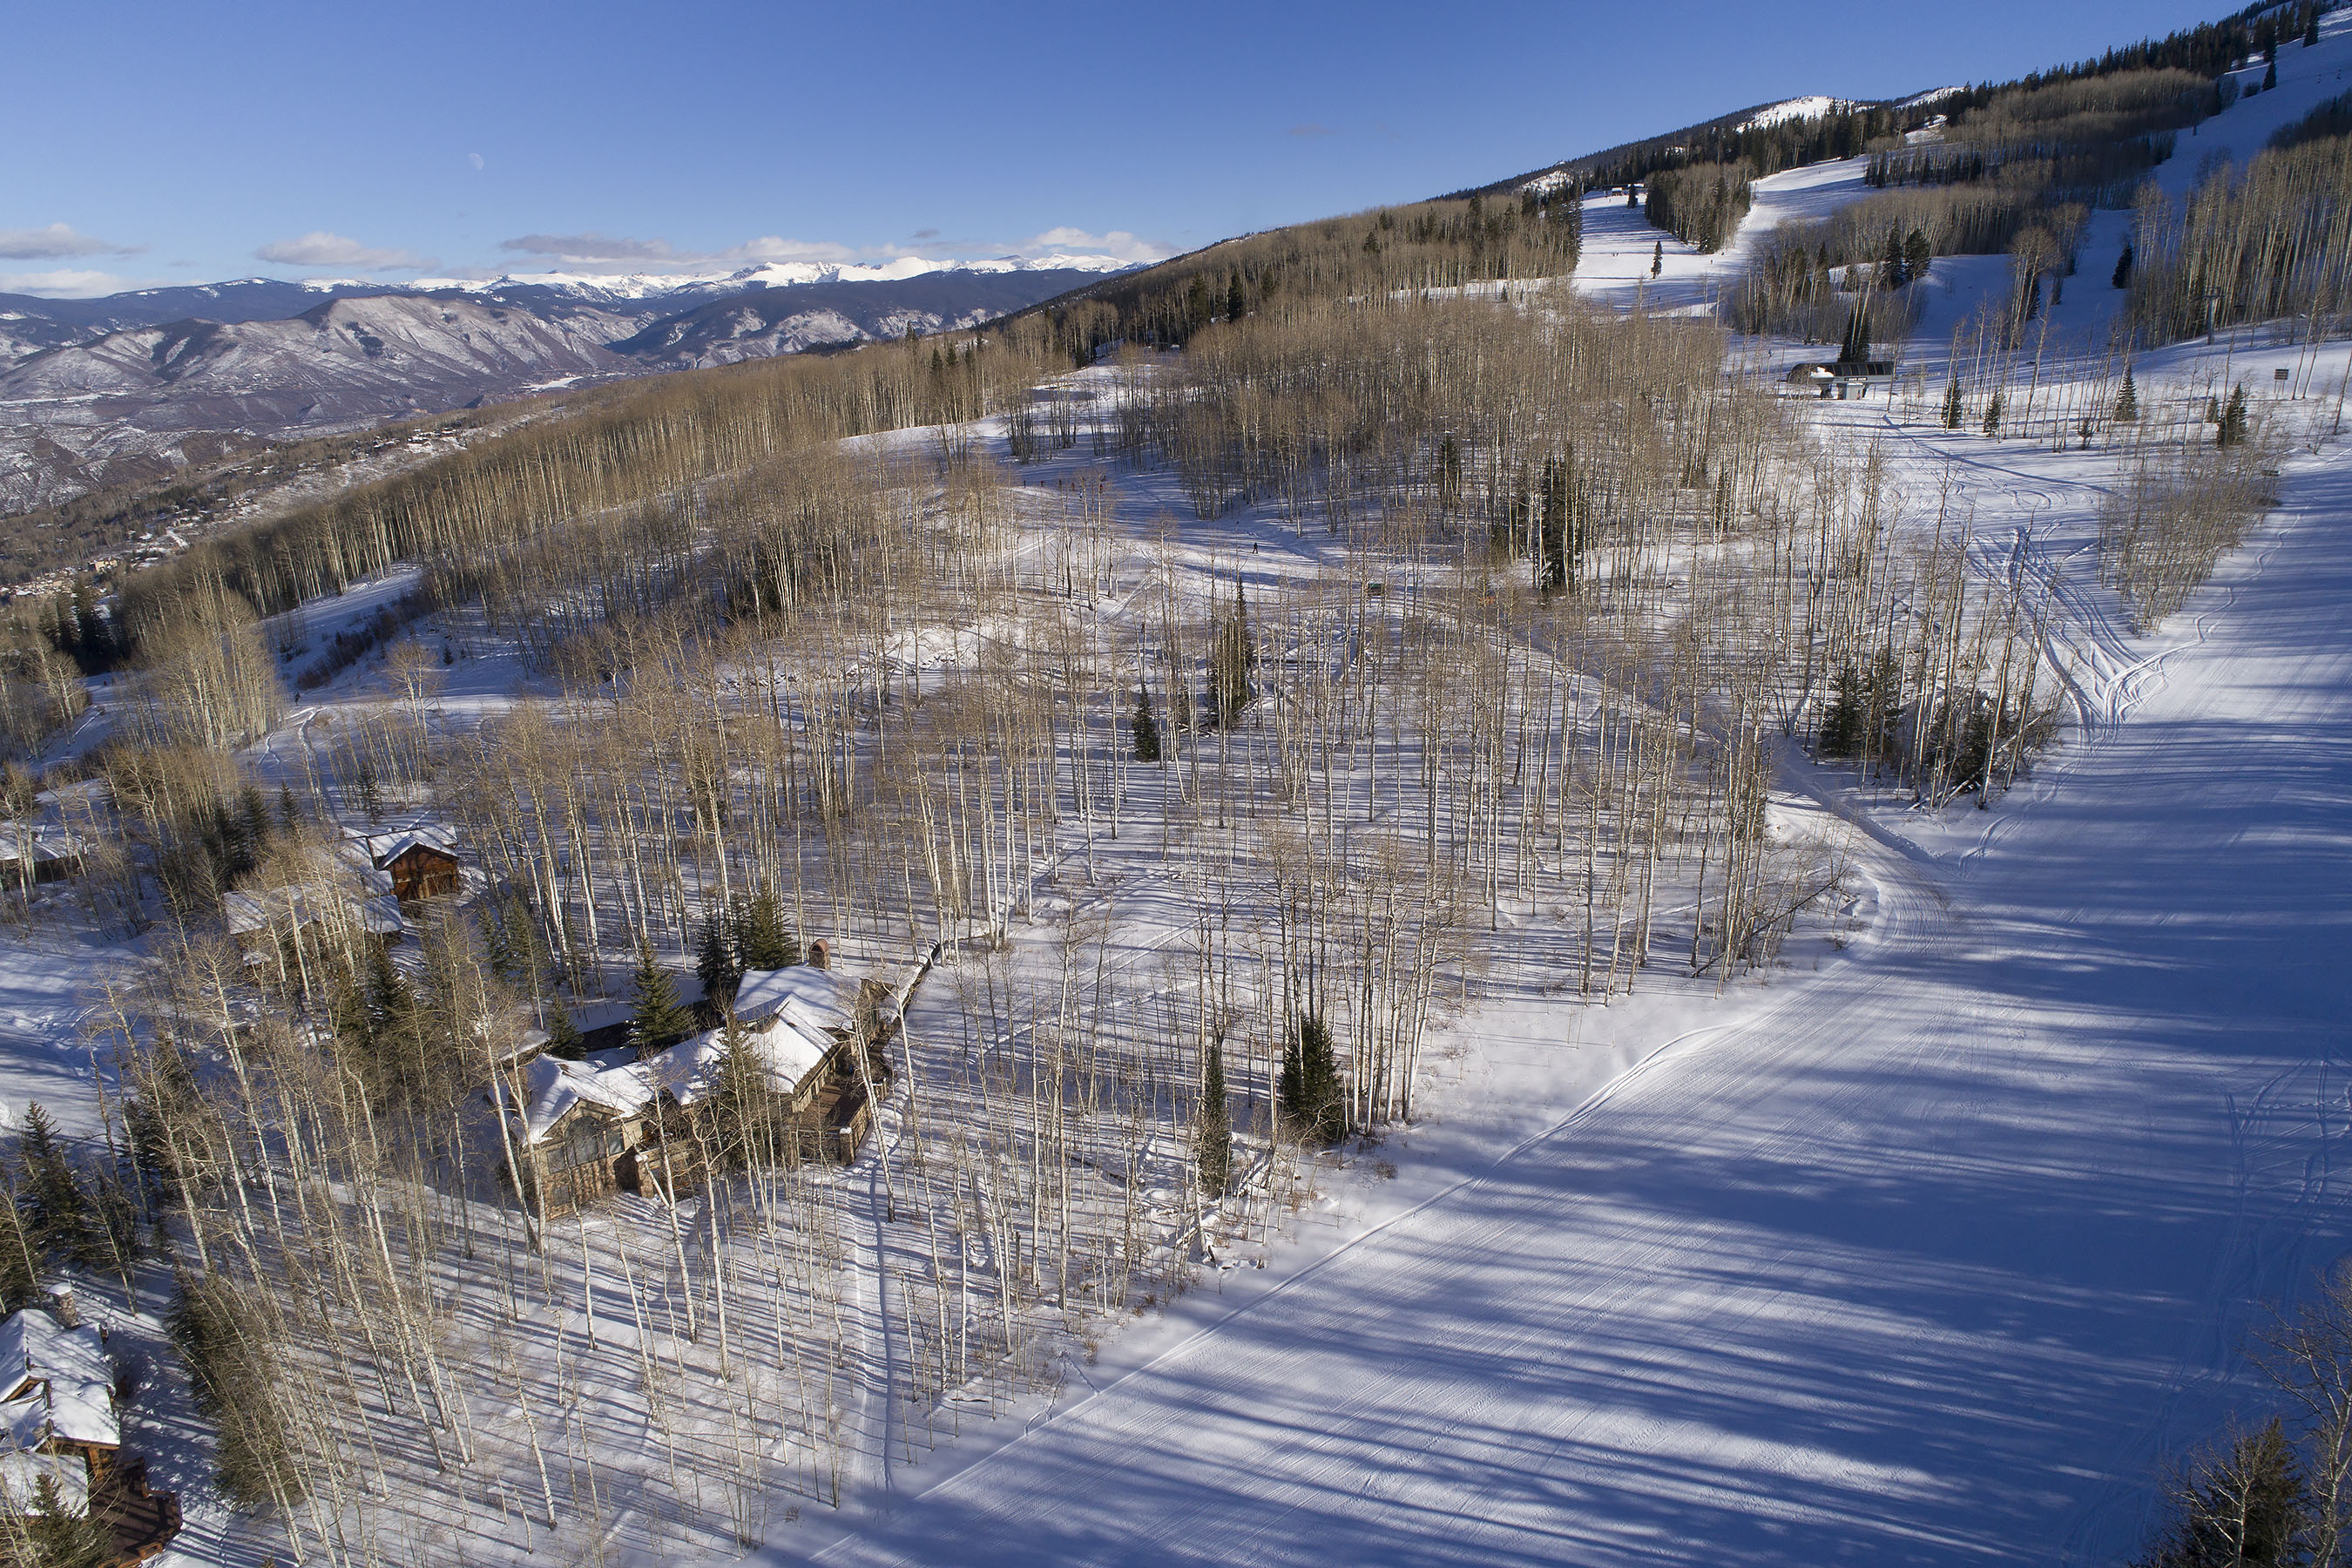 776 Divide Drive Snowmass Village Photo 33